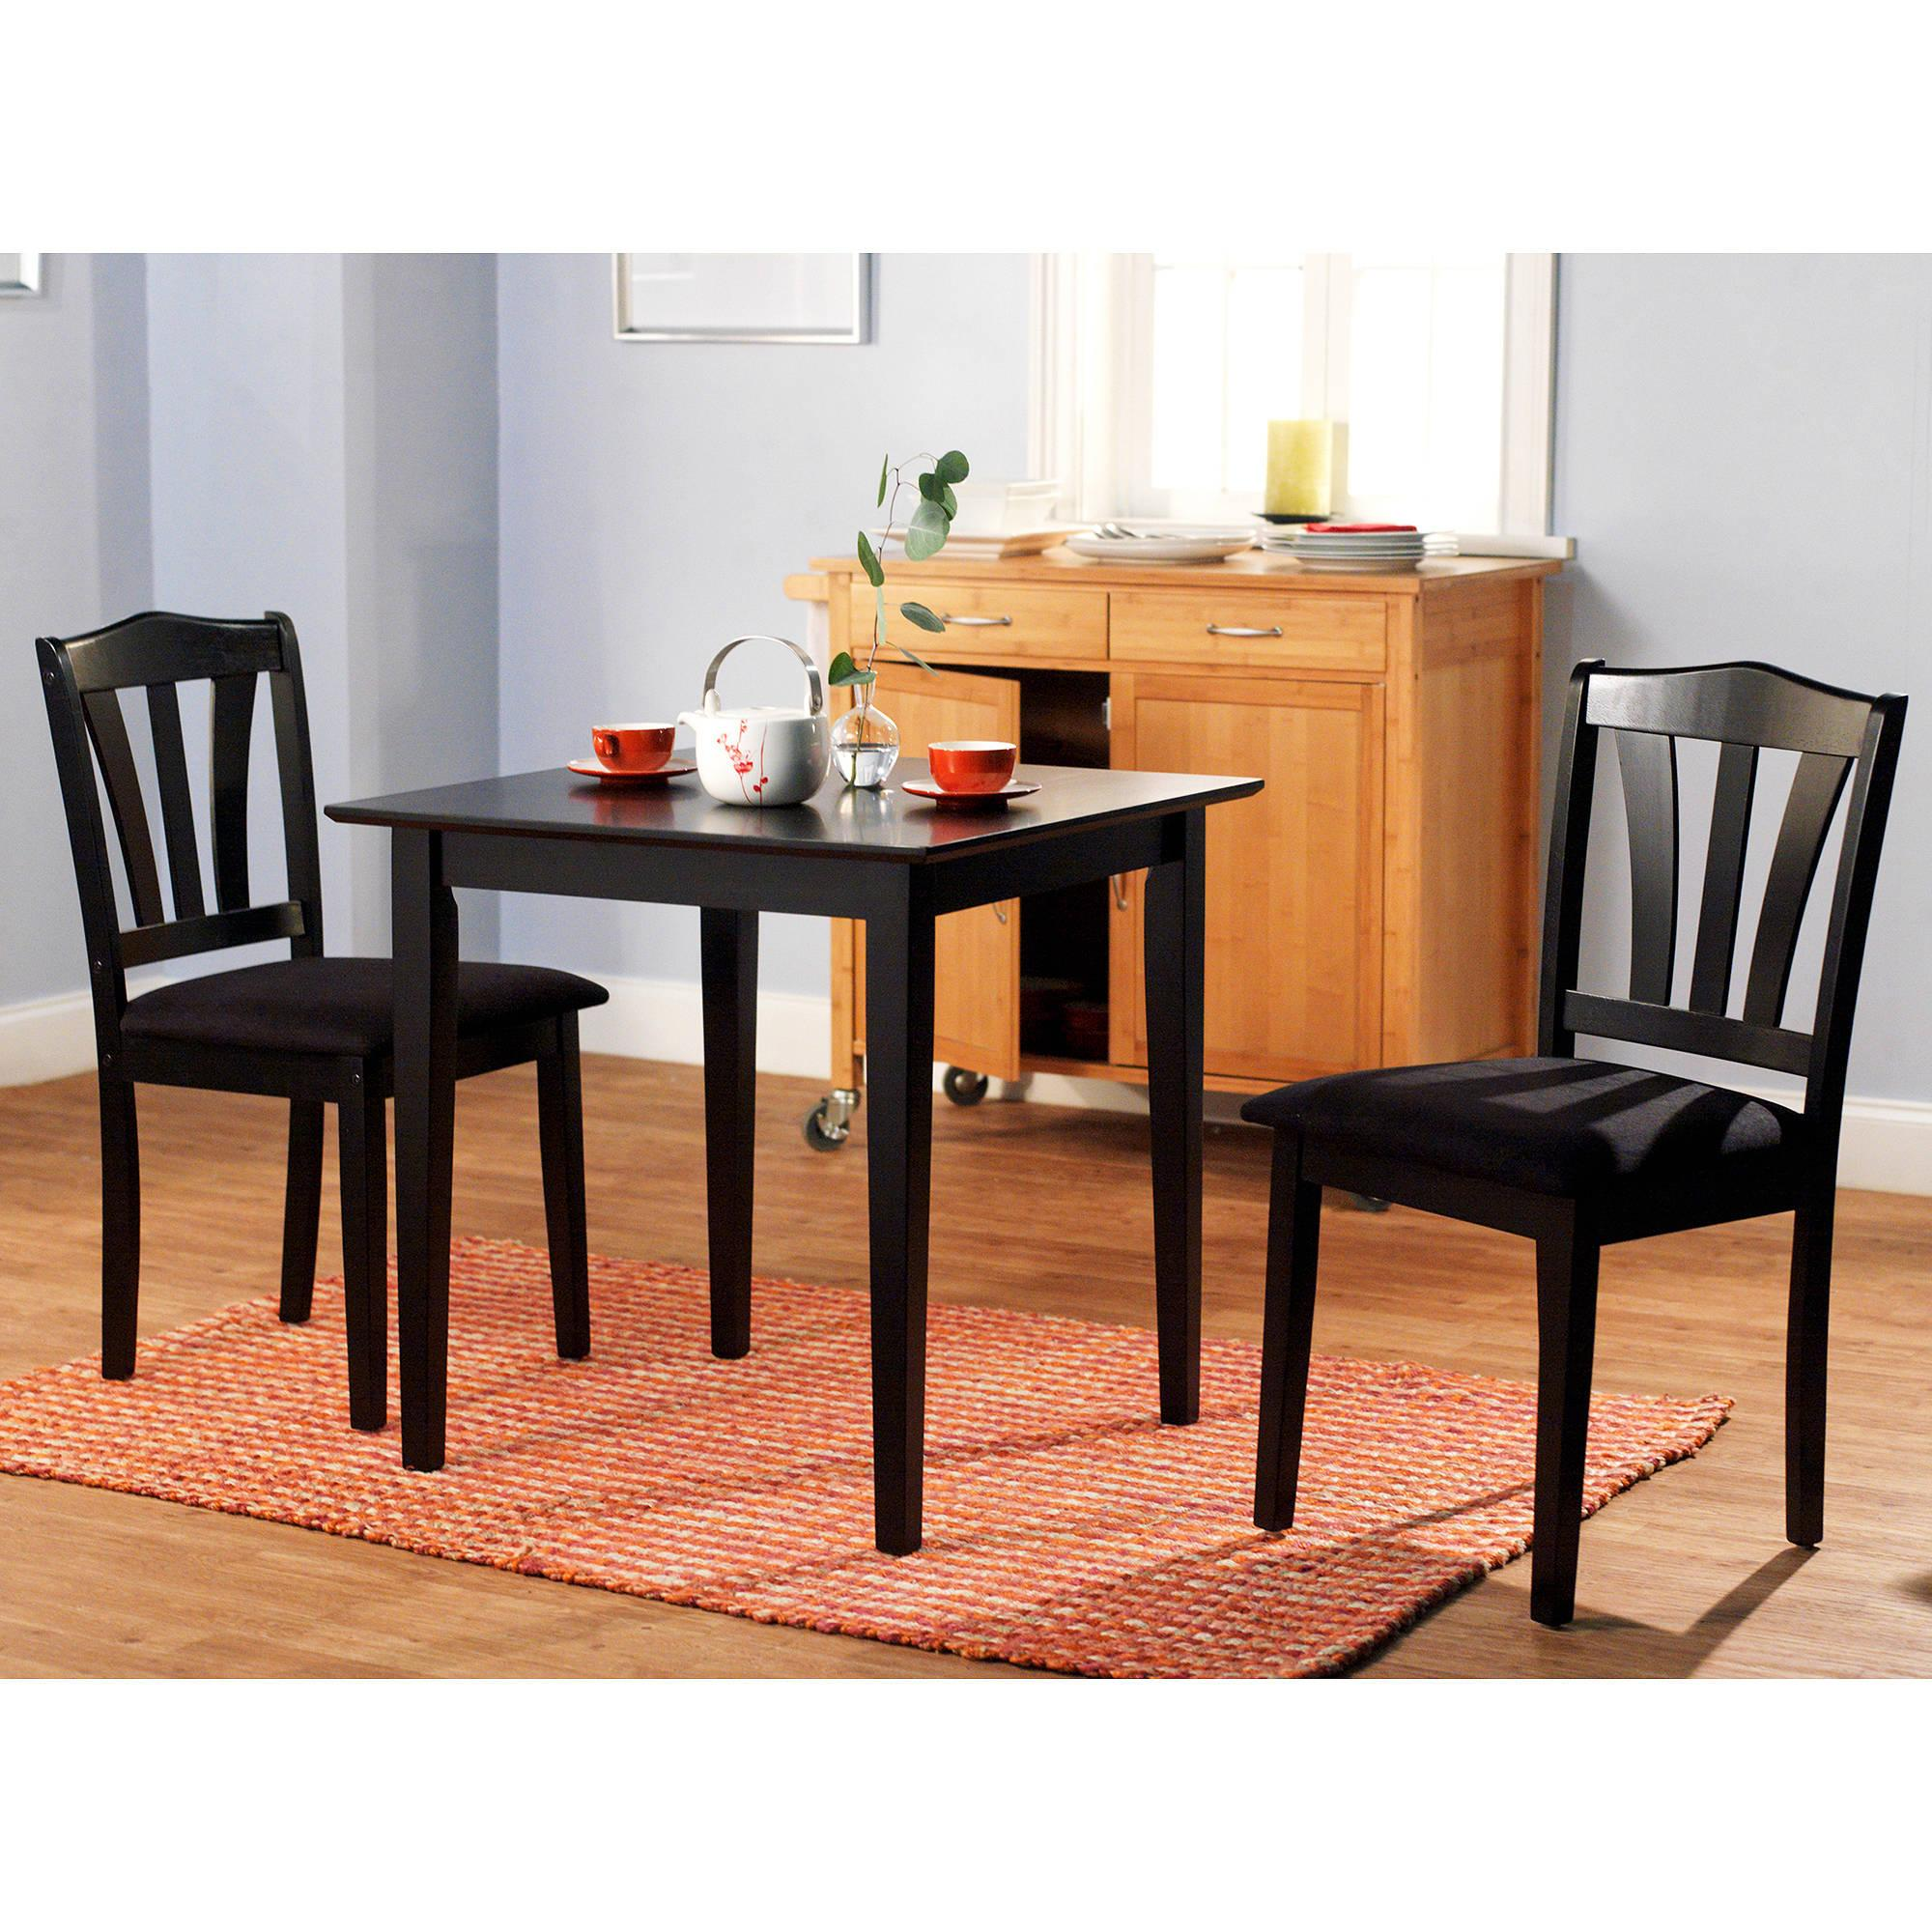 3 Piece Dining Set Table 2 Chairs Kitchen Room Wood